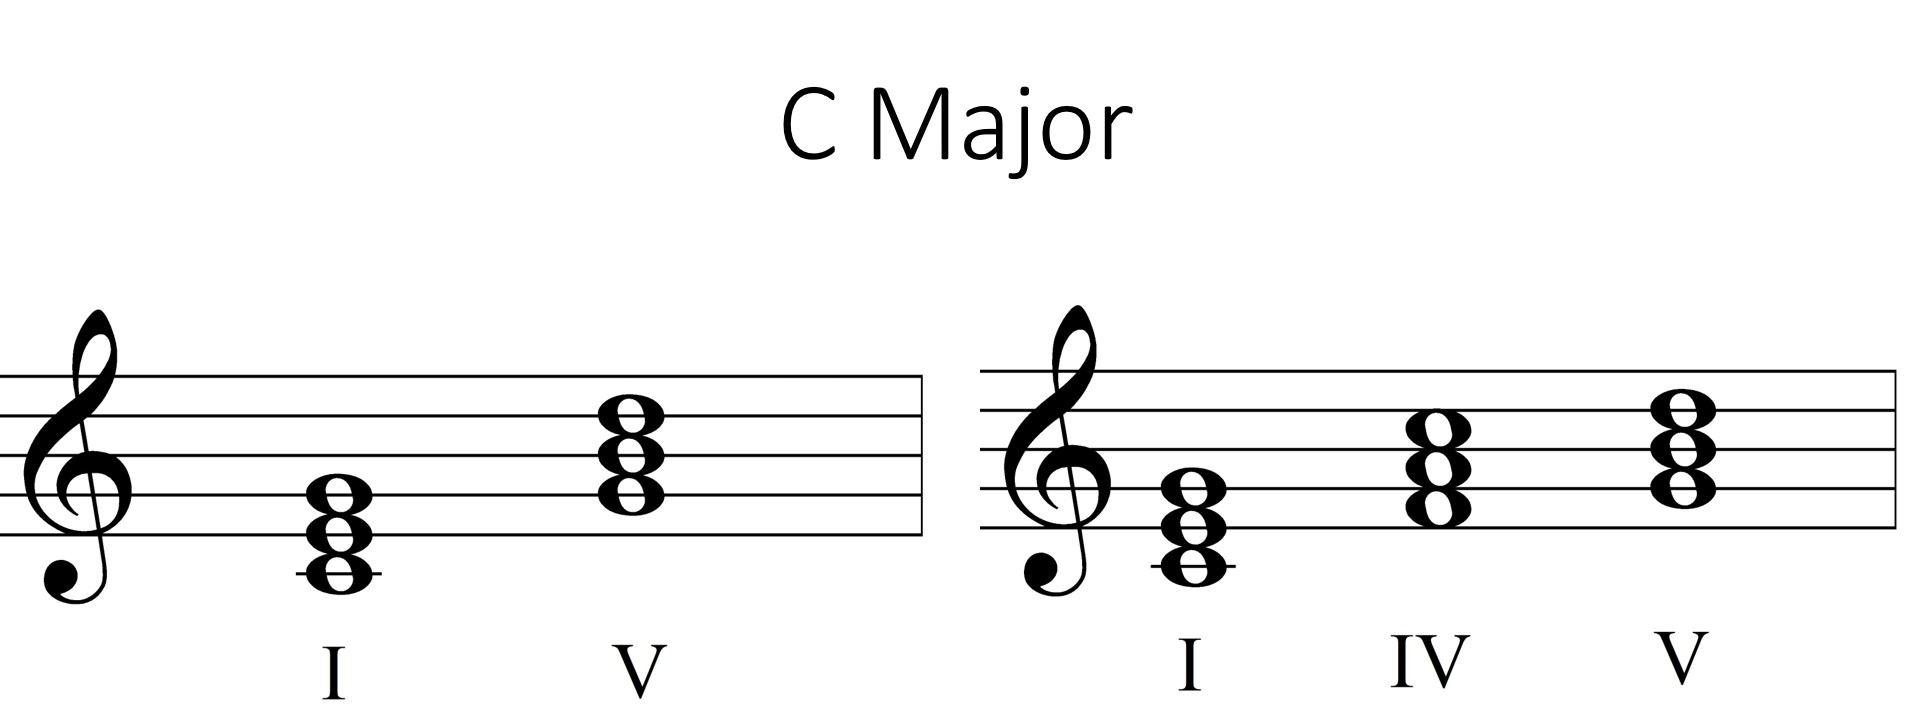 Primary triads in C Major on the staff